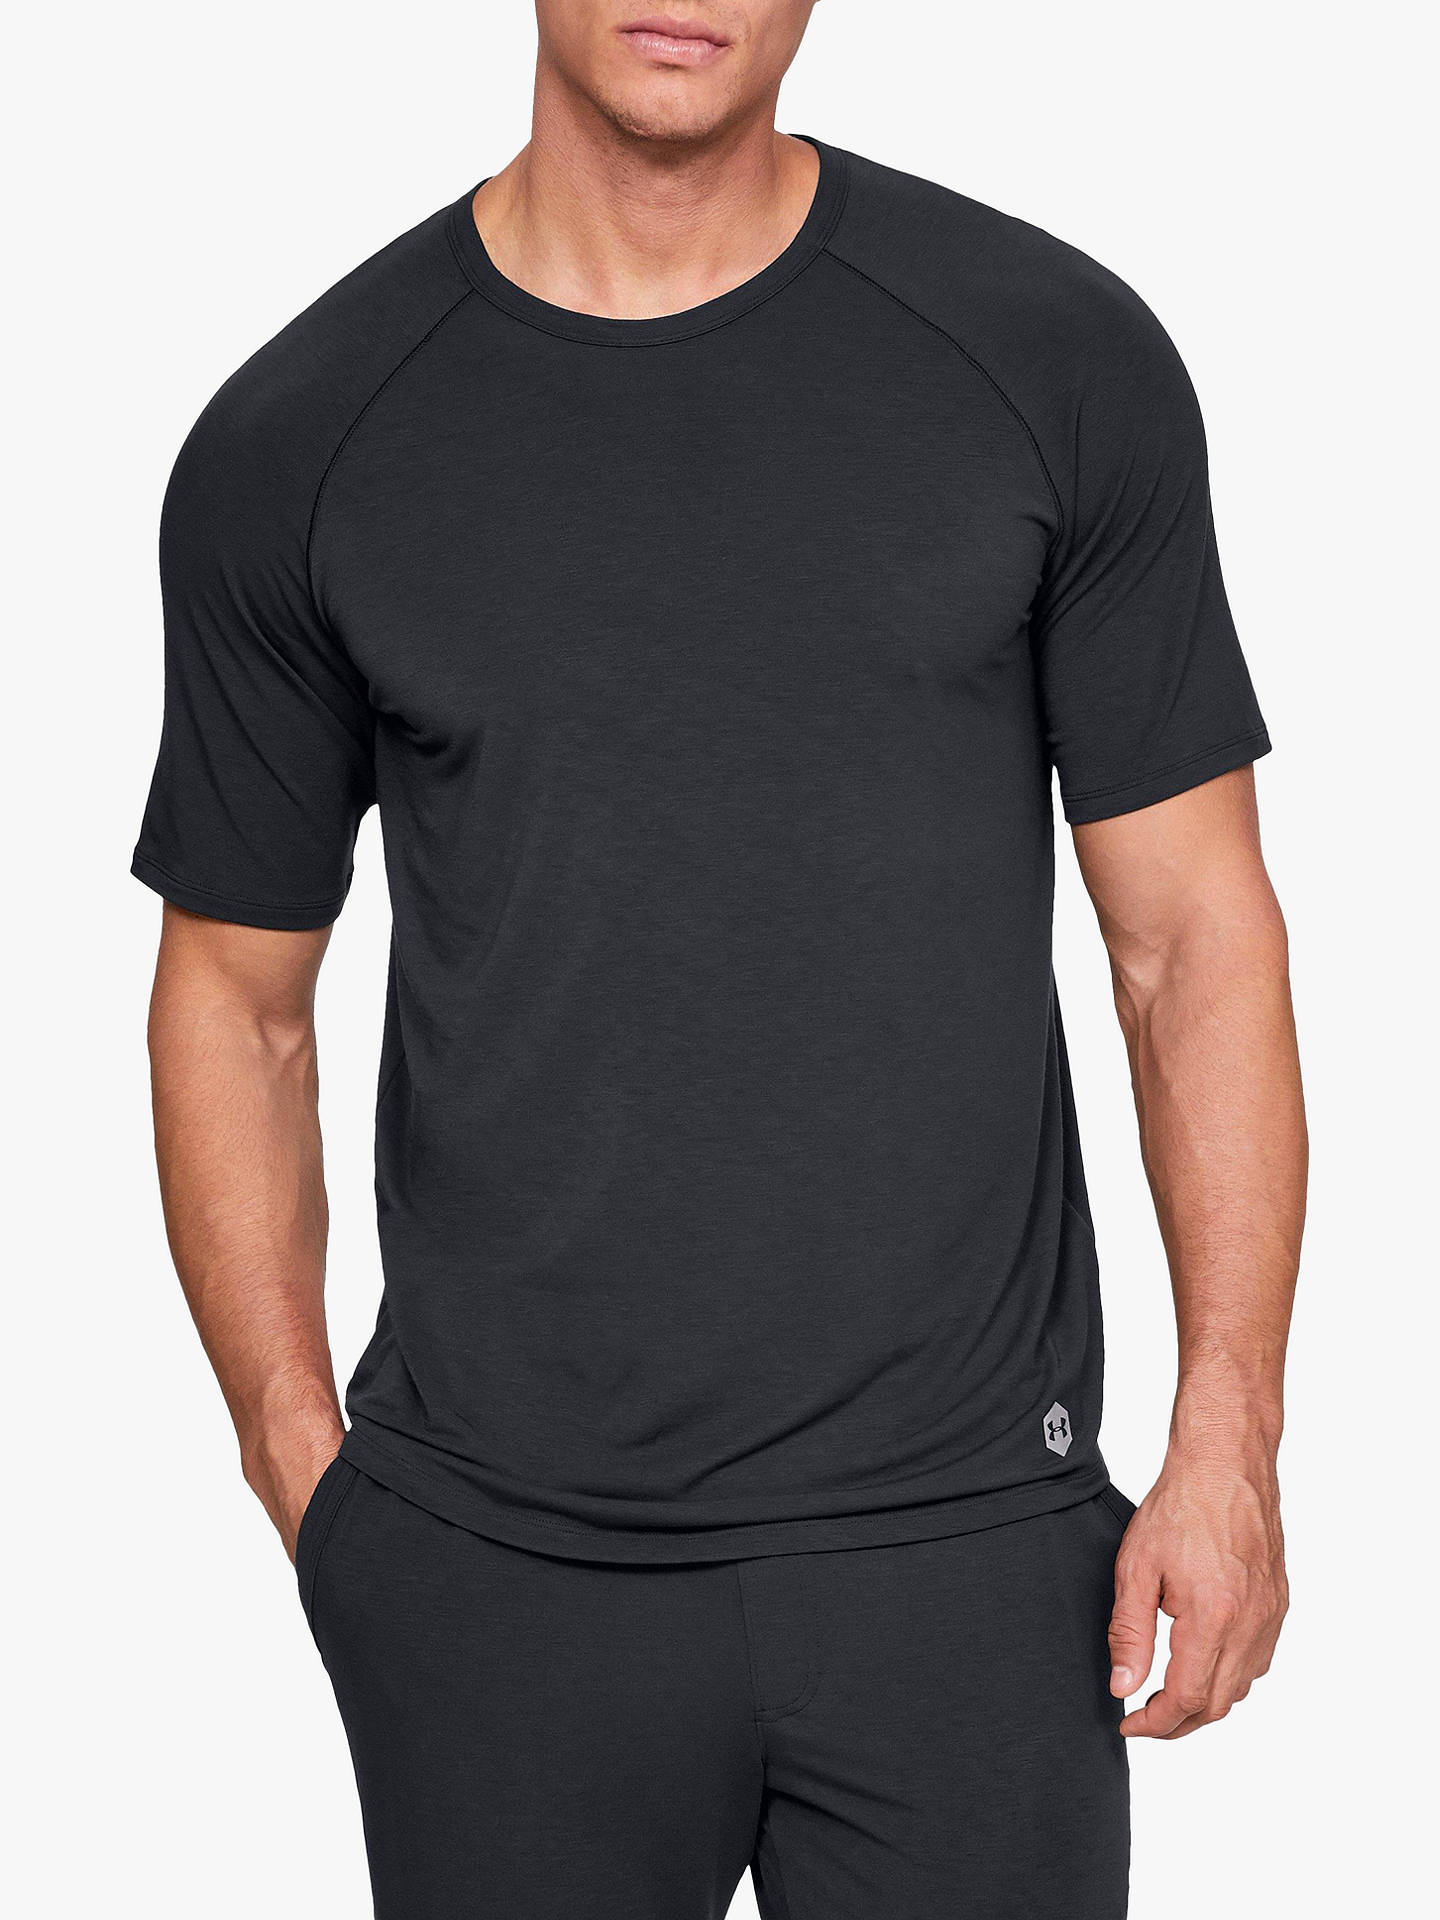 218070ee14 Under Armour Athlete Recovery Sleepwear T-Shirt, Black